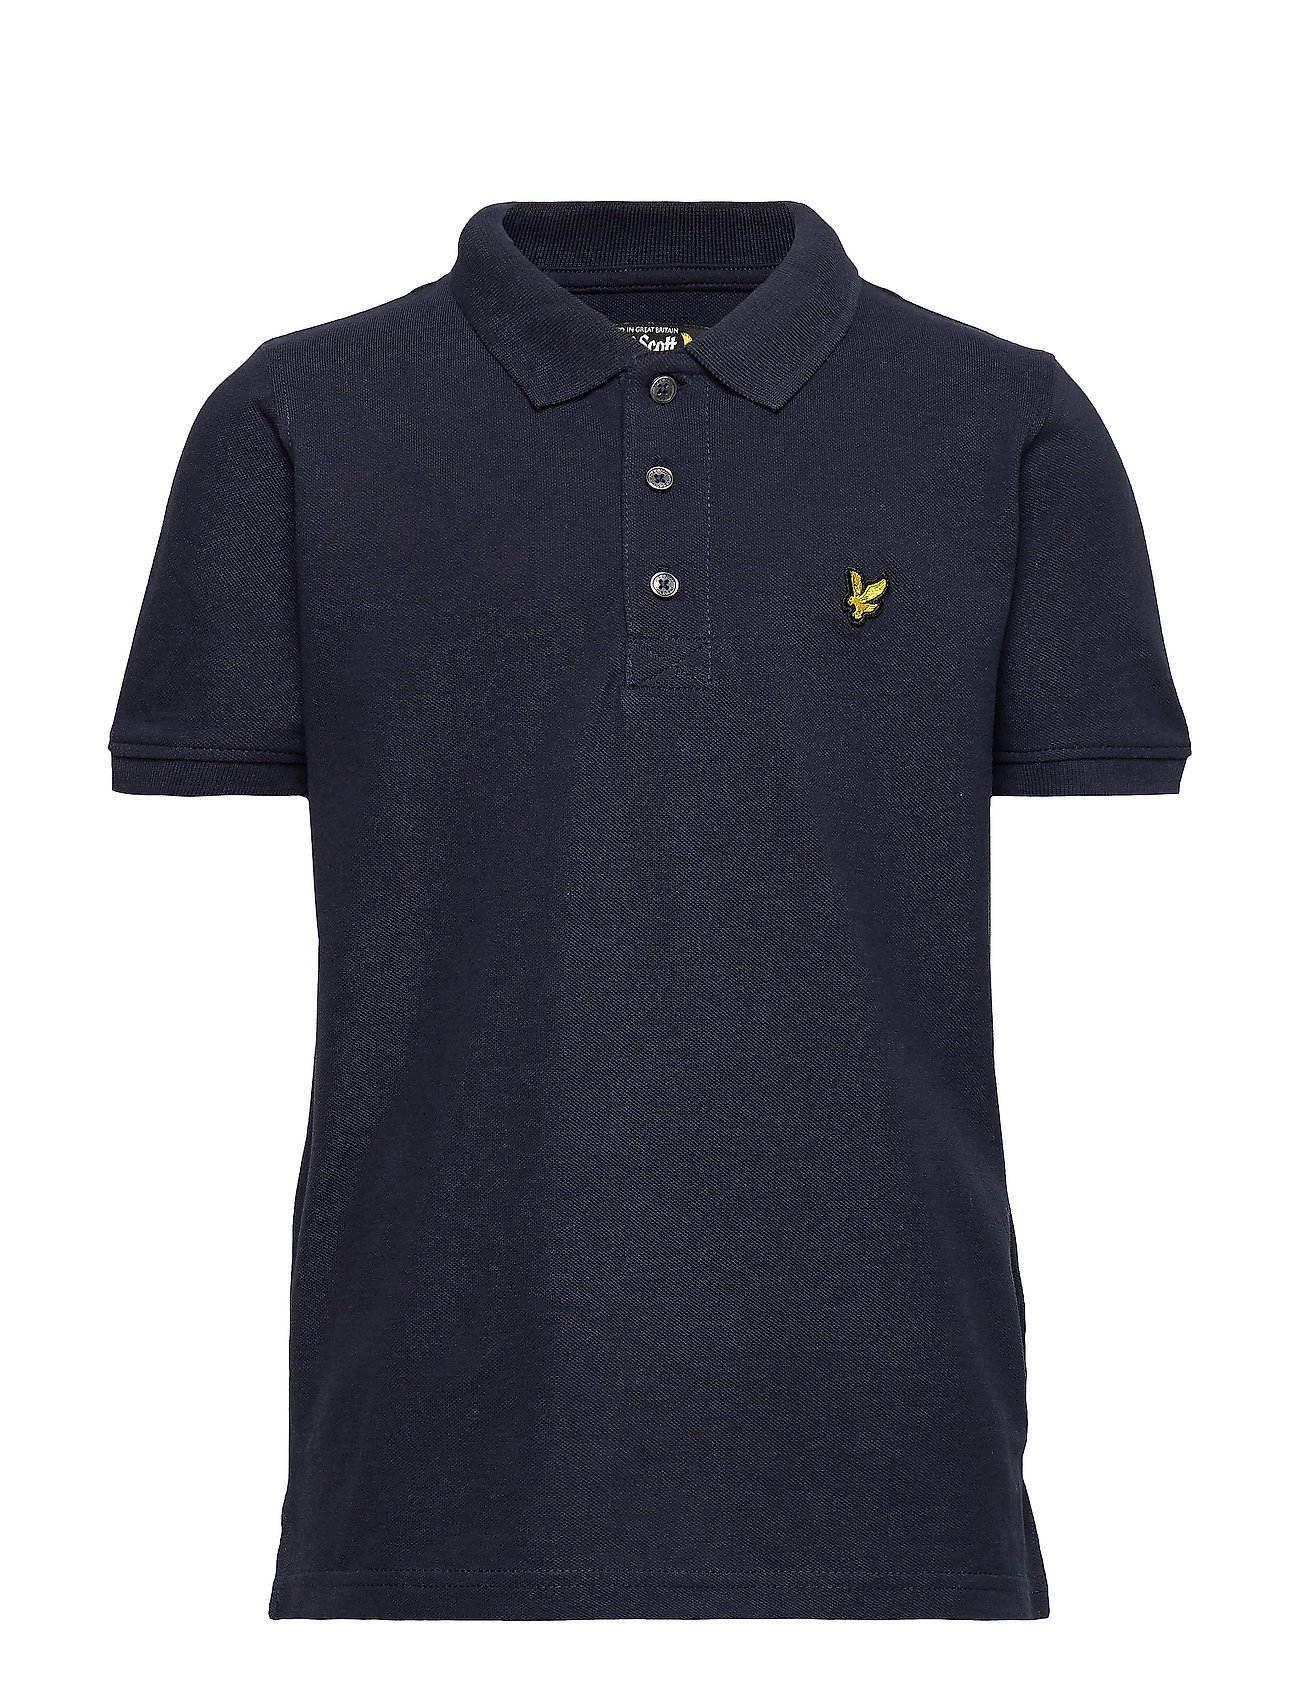 Lyle & Scott Junior Classic Polo Shirt - NAVY